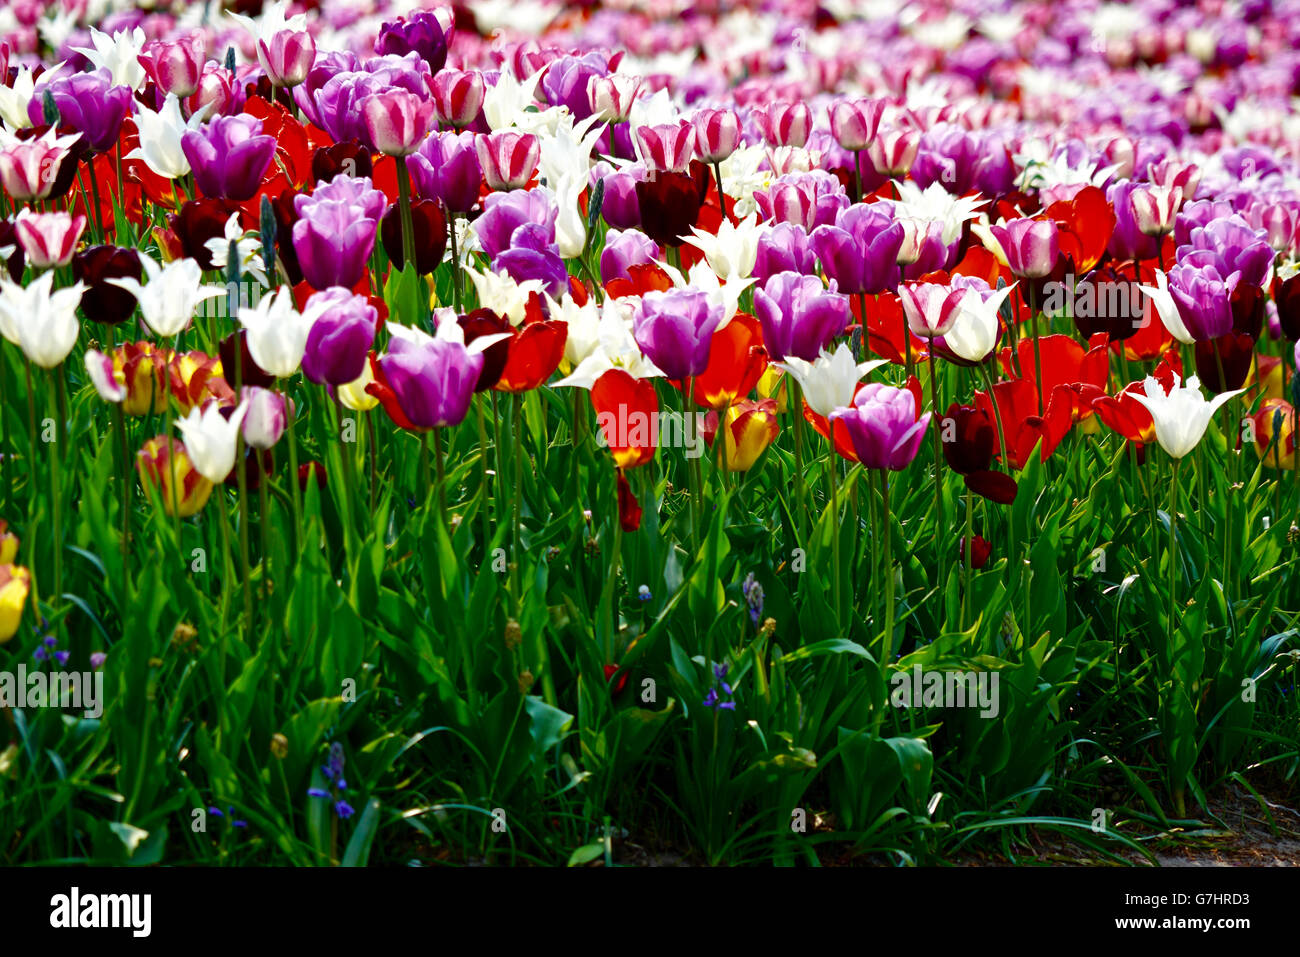 meadow with white, yellow, red and purple tulips - Stock Image